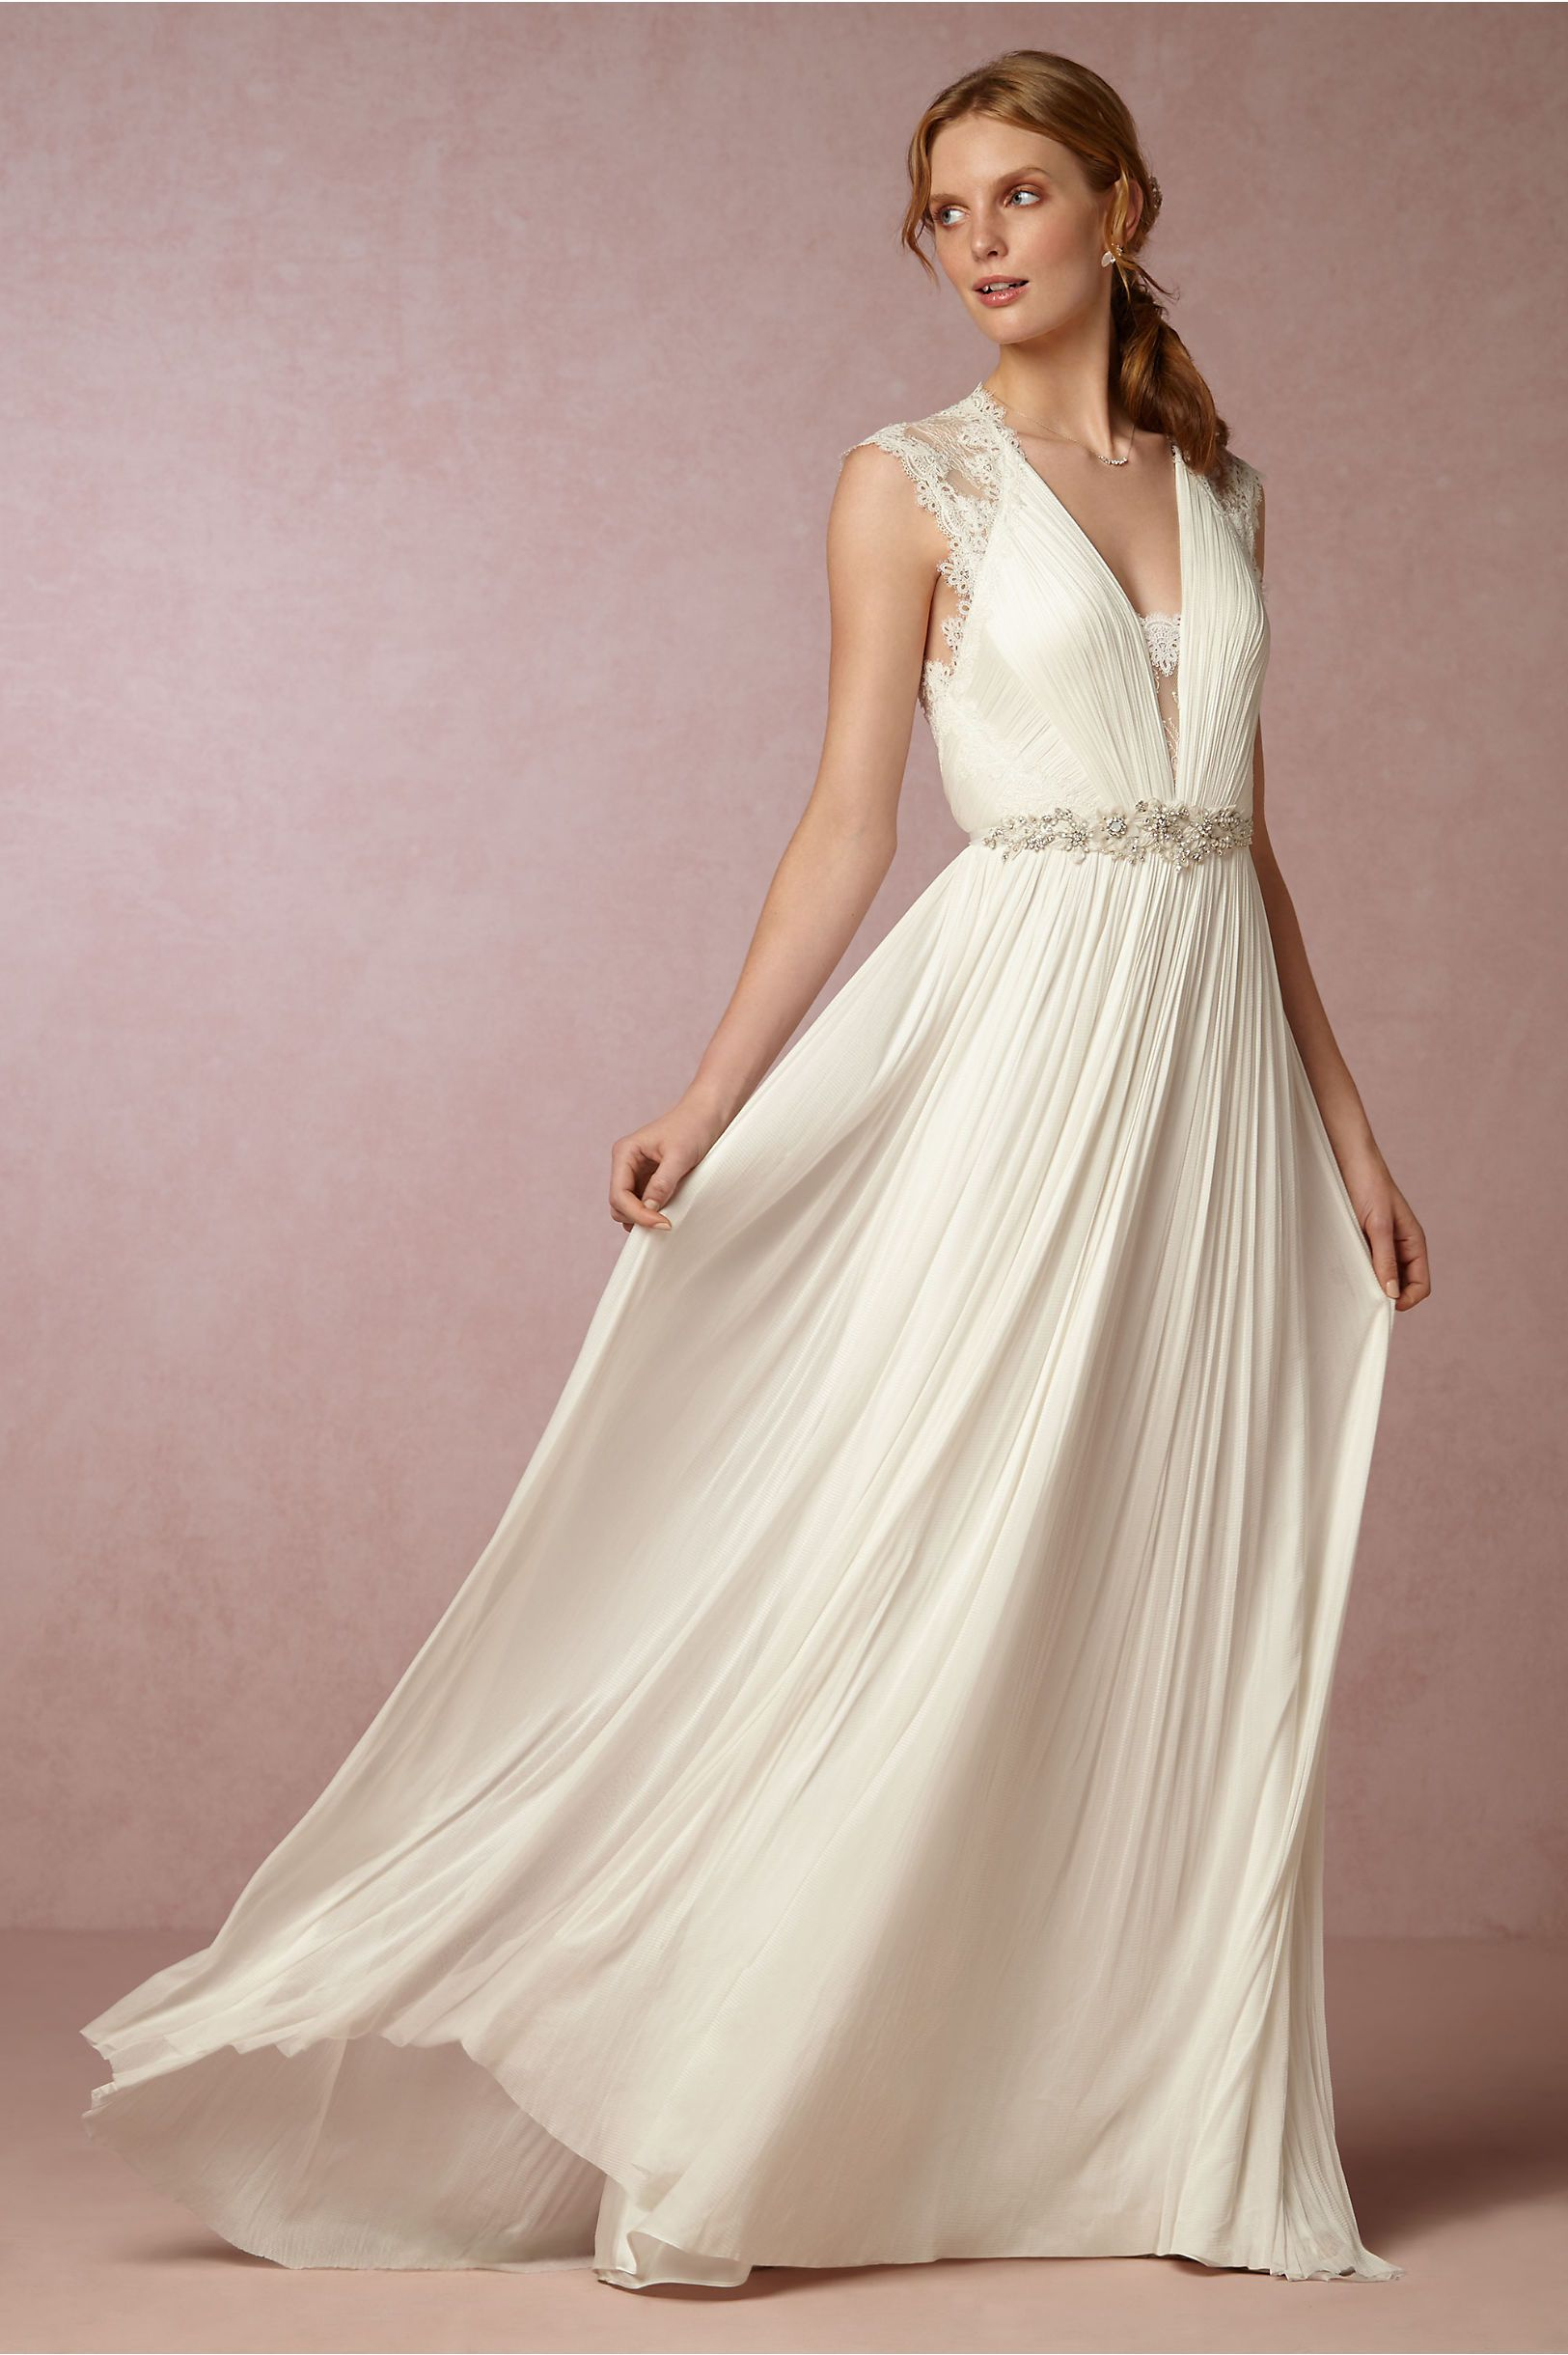 a whimsical romance fantasia gown from bhldn the romantic